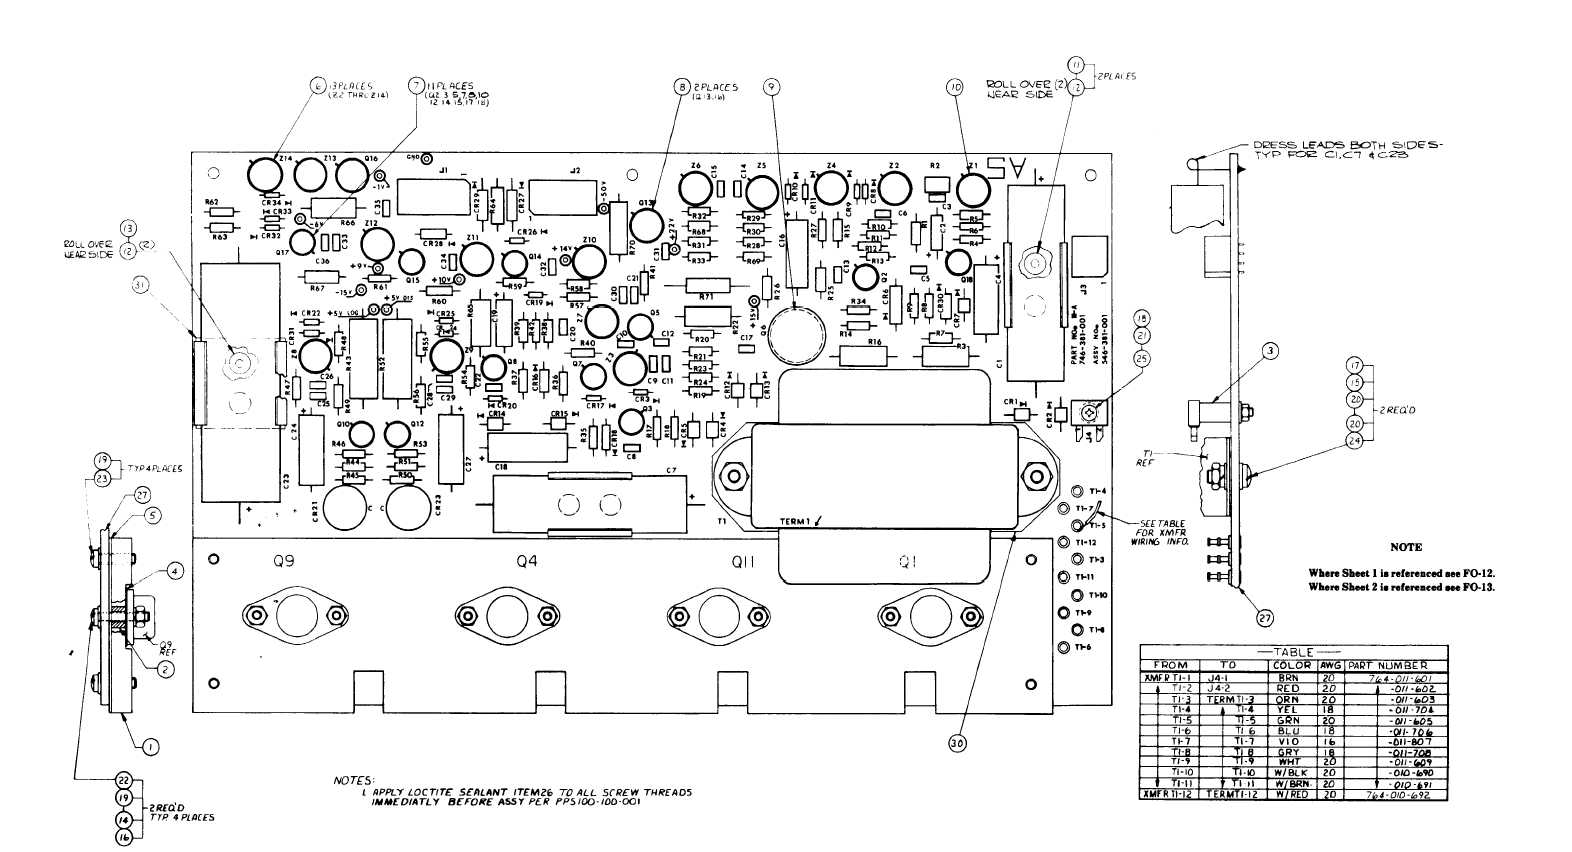 Fo 12 Circuit Board A 5 Component Location Diagram For Test Set Fuel Quantity Gage Capacitance